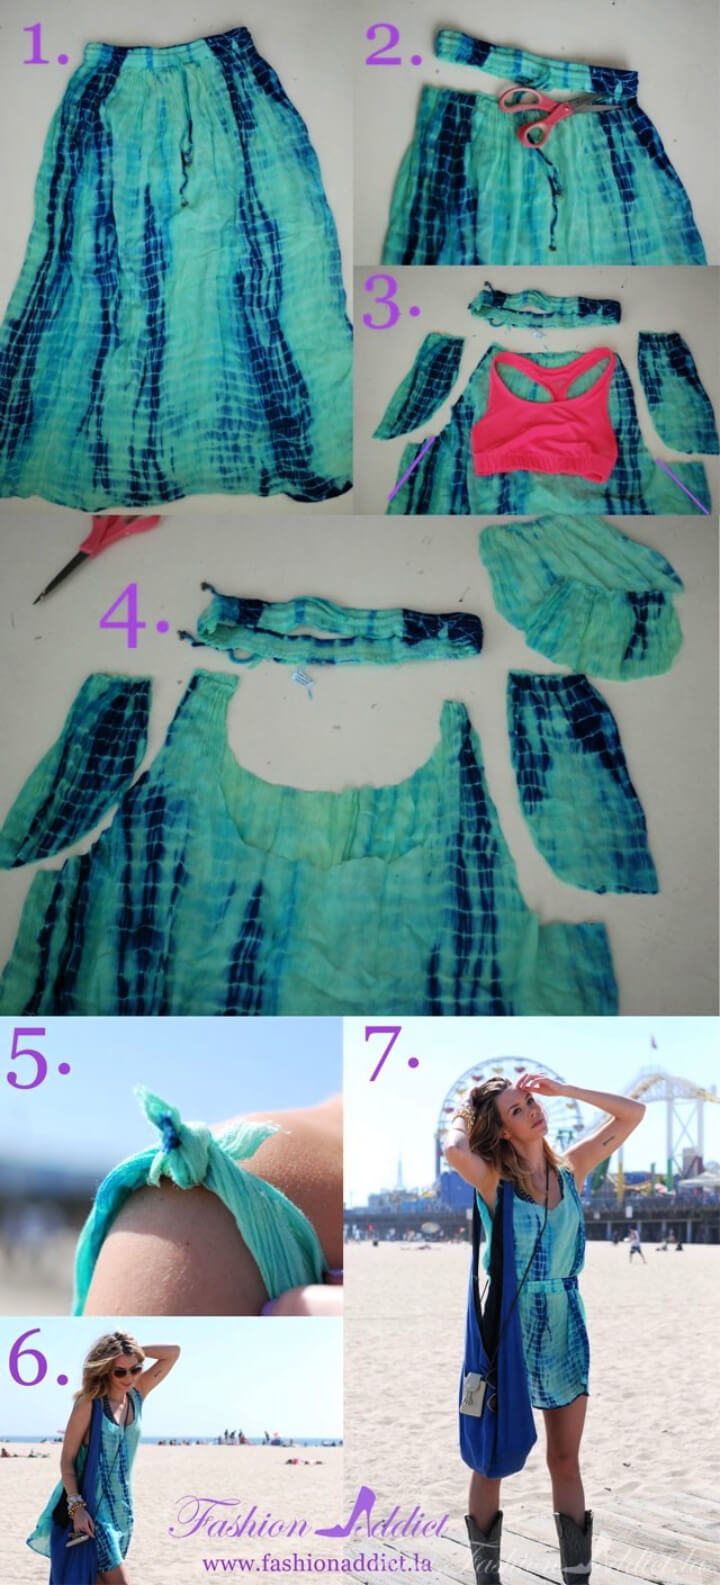 How To Make No Sew DIY Slip Dress